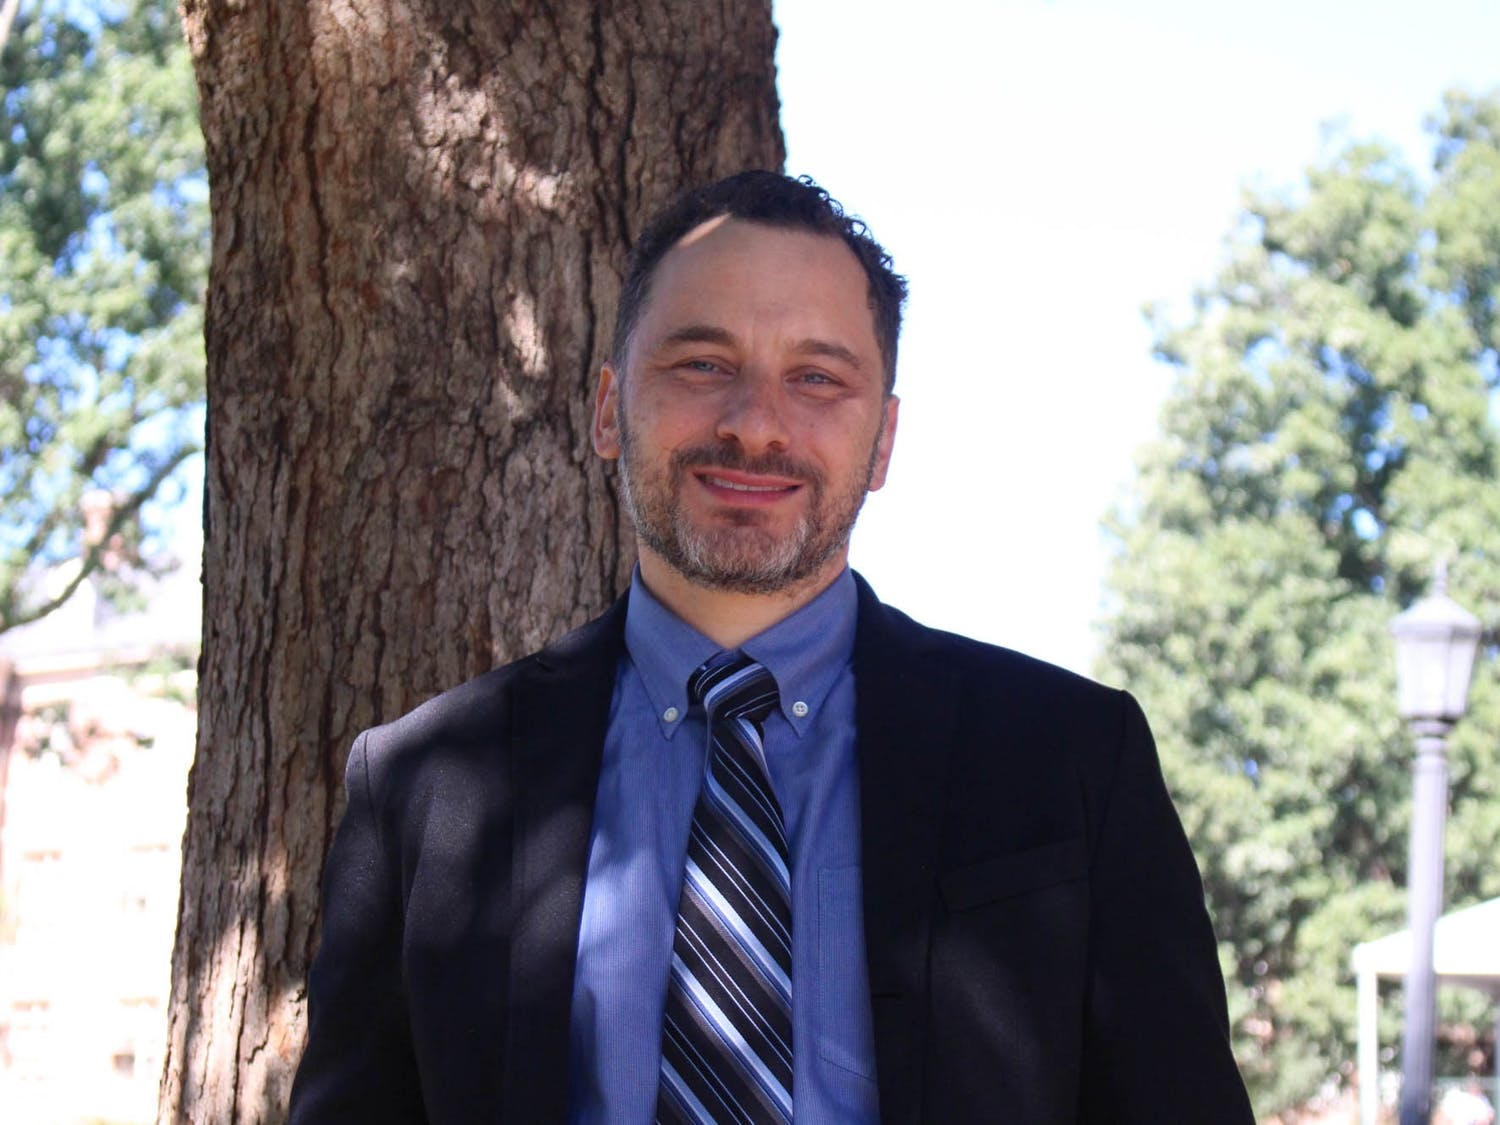 """Professor Seth Noar launched the Communication for Health Impact (CHI) Lab through the Hussman School of Journalism and Media. CHI is """"dedicated to promoting health through communication""""."""